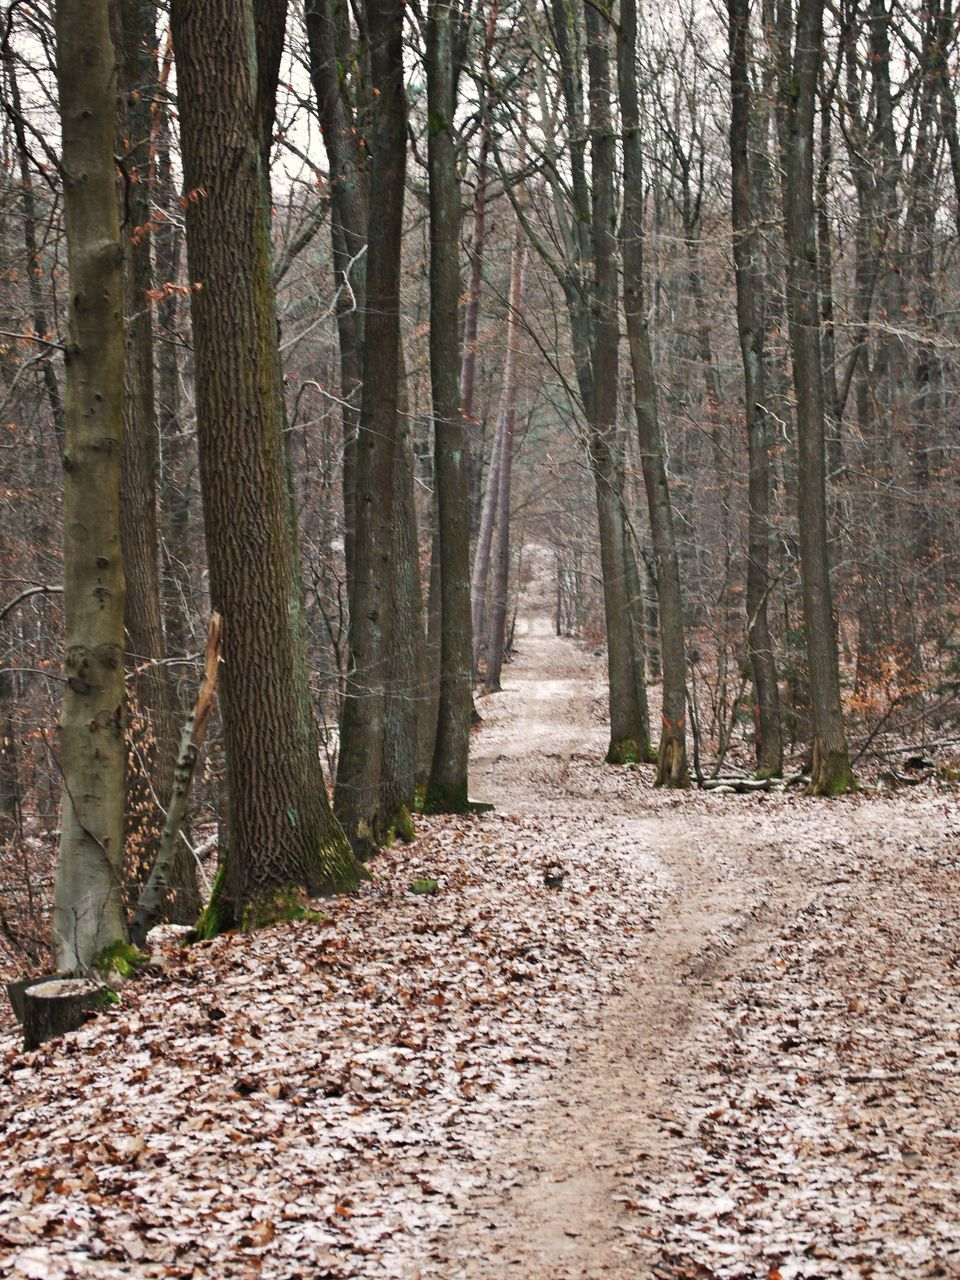 forest, tree trunk, nature, tree, tranquility, outdoors, the way forward, day, autumn, no people, beauty in nature, scenics